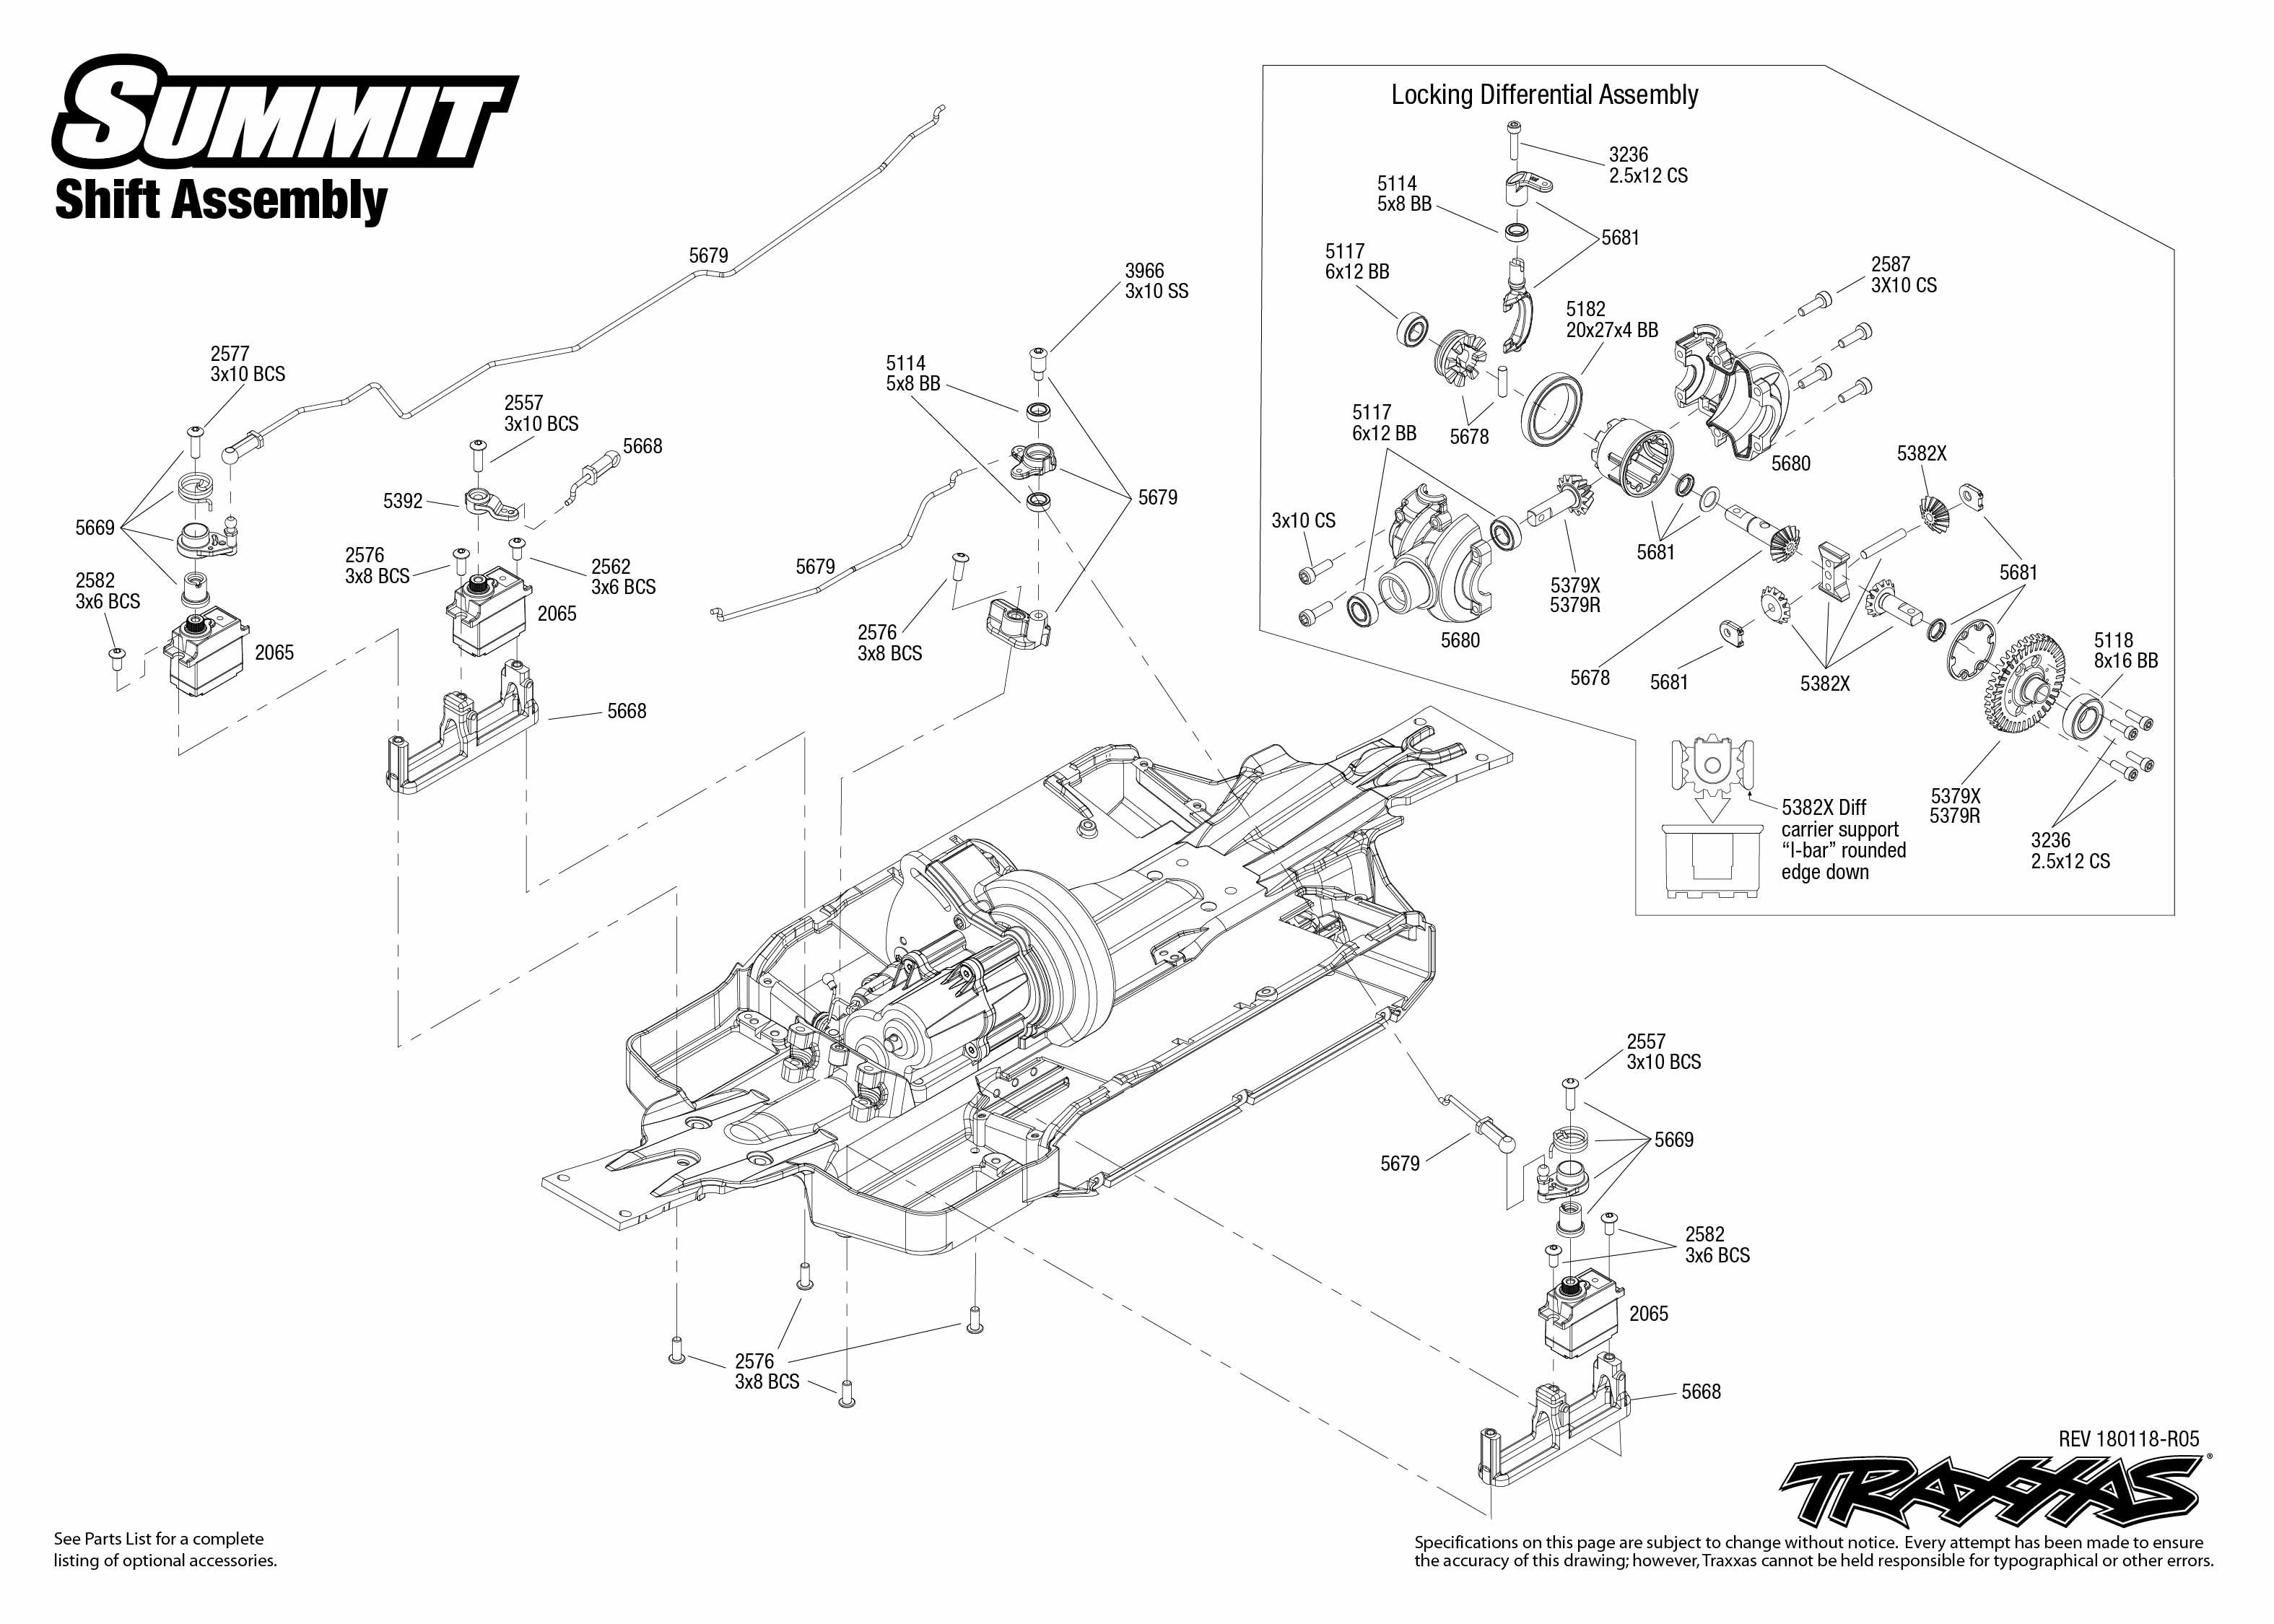 Summit 4 Shift Assembly Exploded View